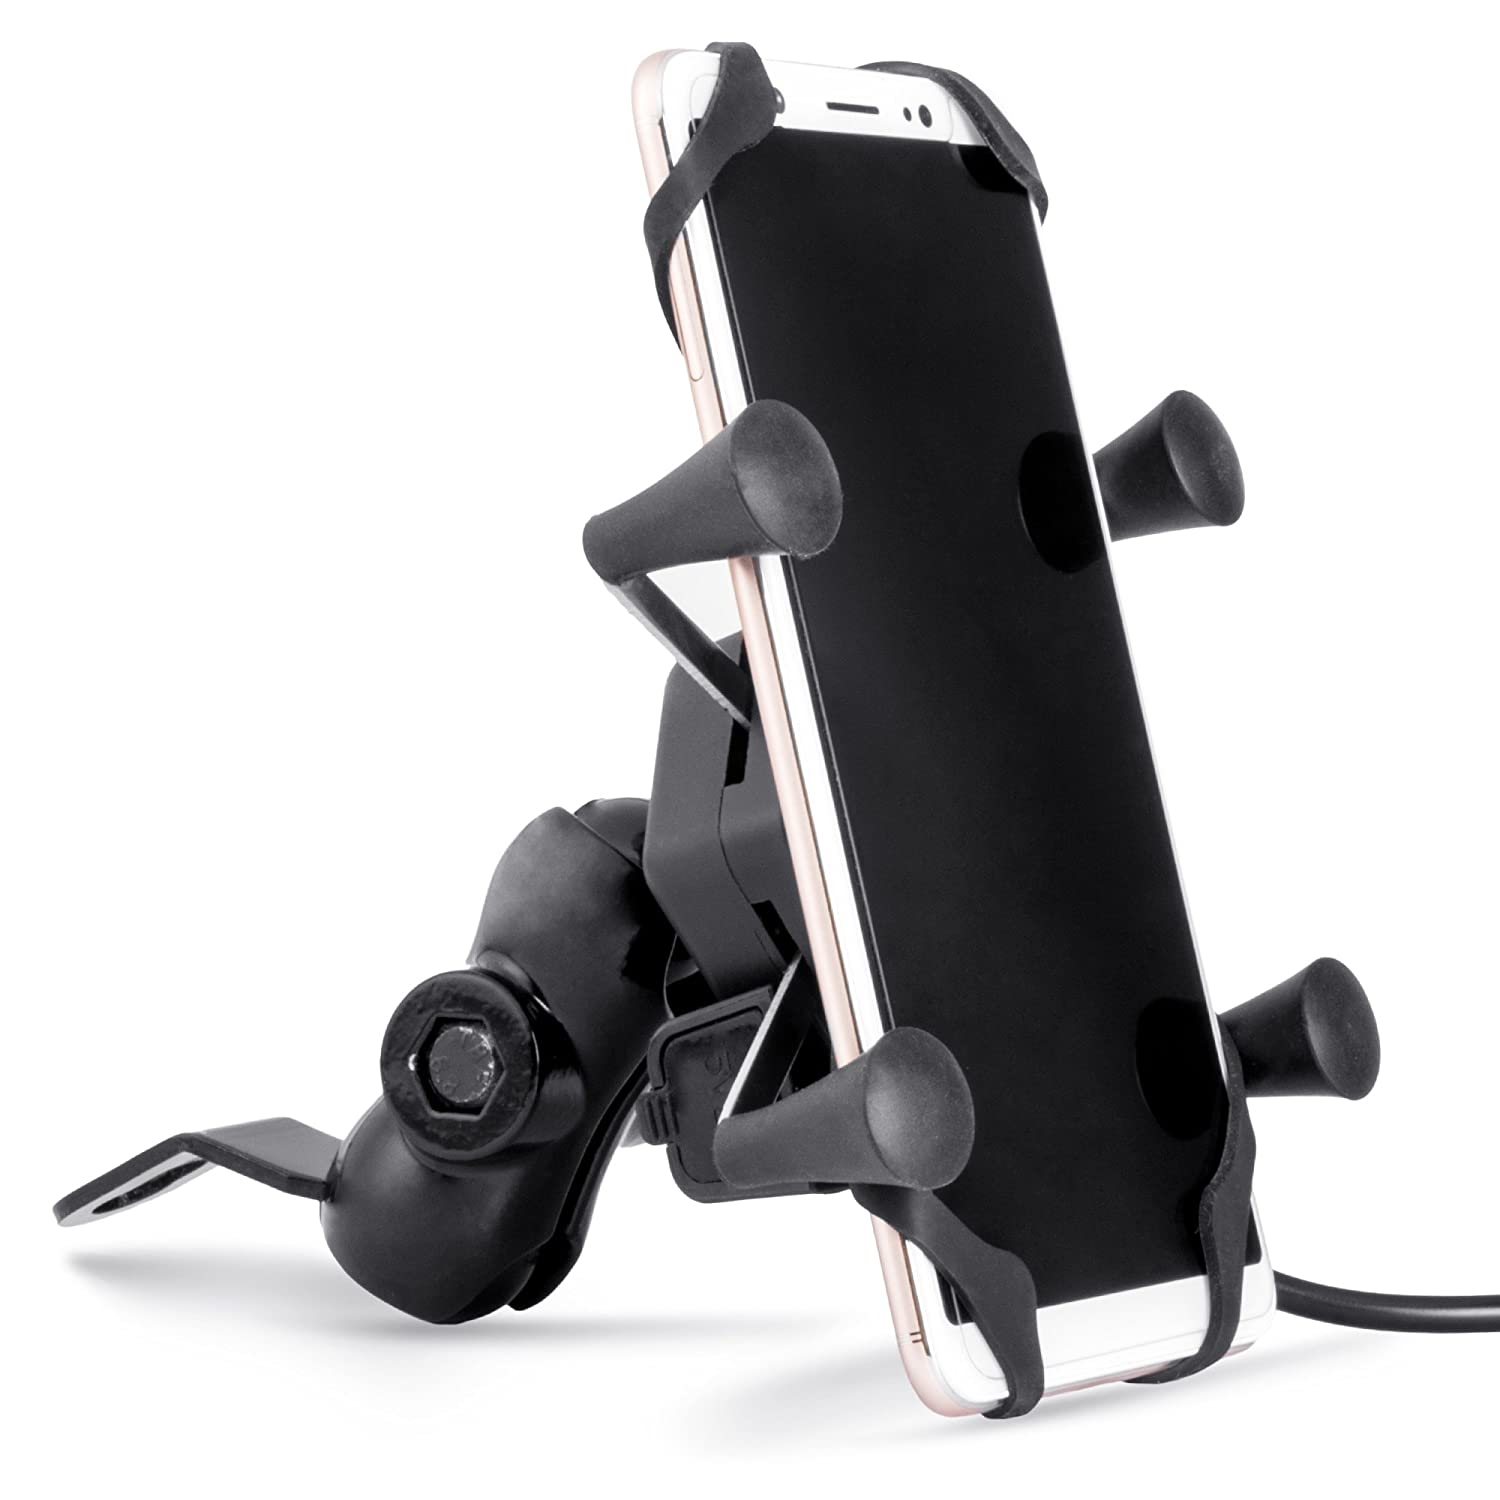 X-Grip Premium Bike Mobile Charger